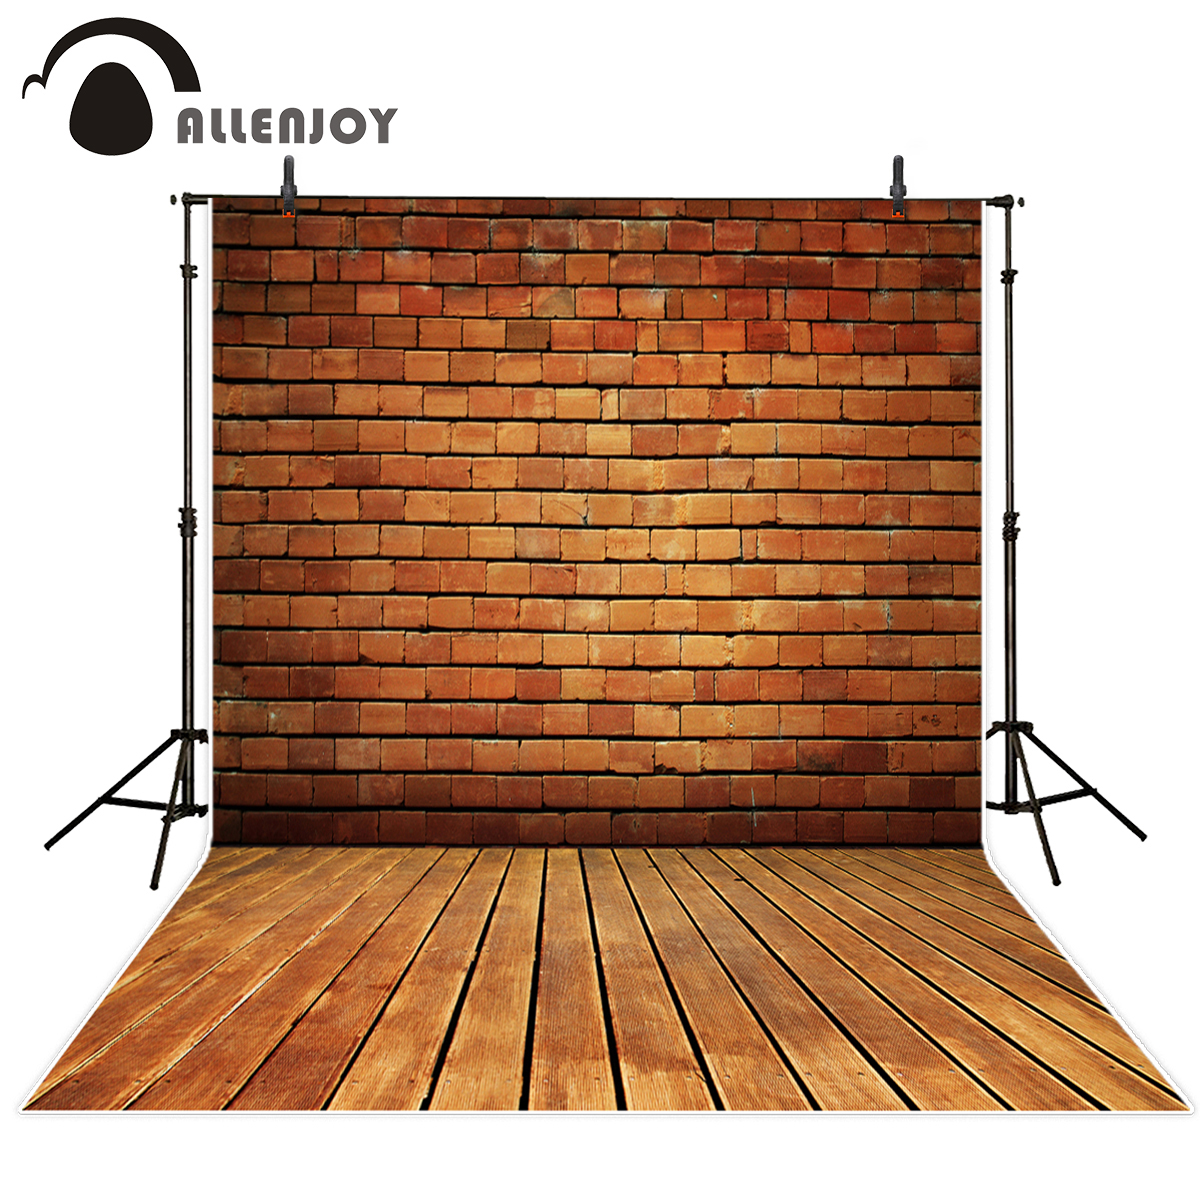 Allenjoy photography background vintage brick wall wood floor professional photo studio theme backdrop camera fotografica 5x10ft 1 5x3m vivid brick wall and weathered wood floor printed studio photography backdrop background for photo studio n 014